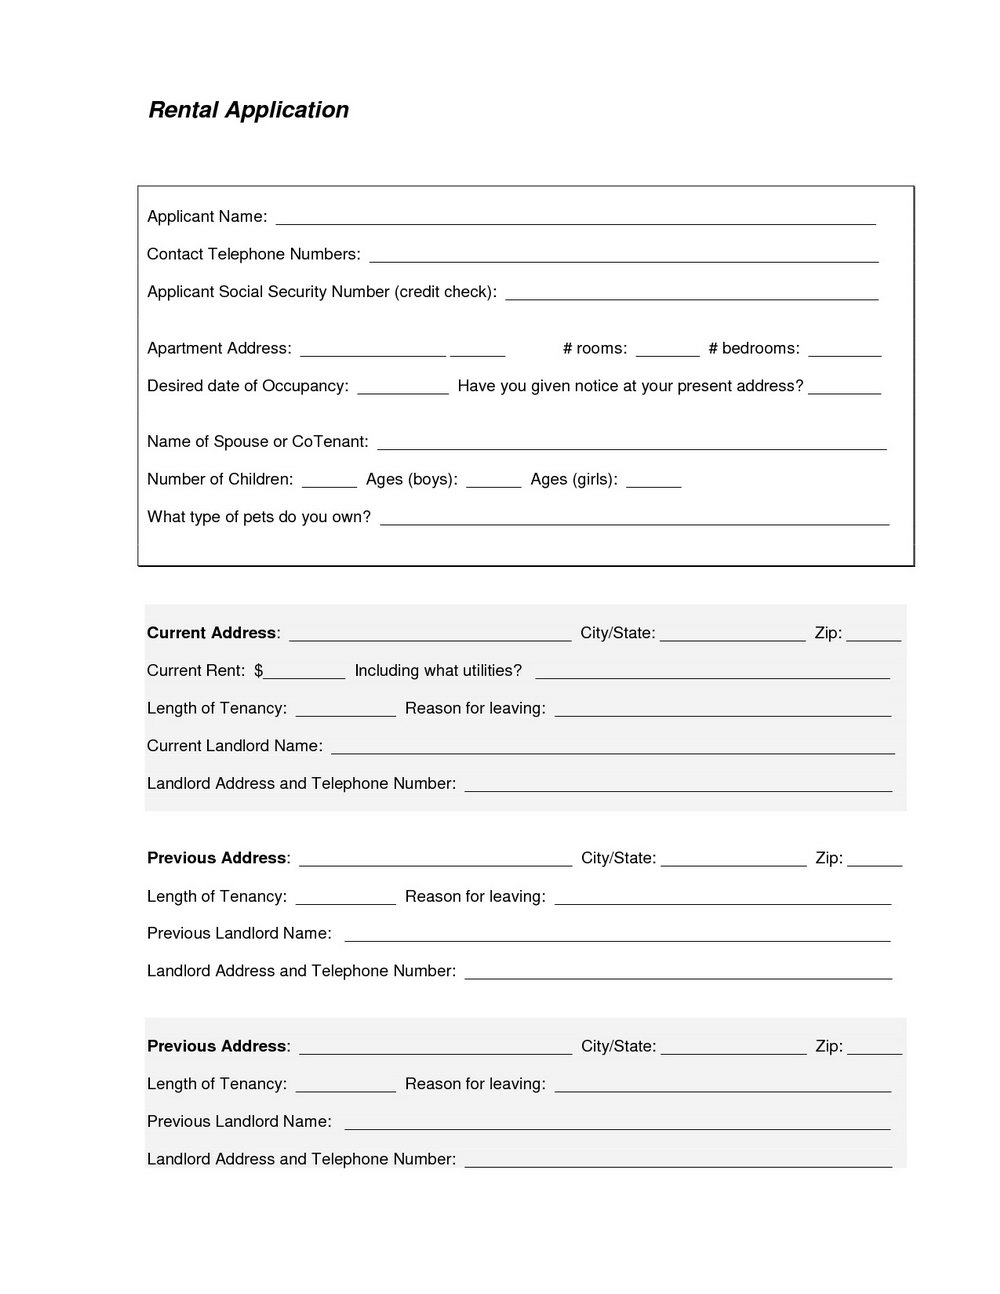 Tenant Background Check Form